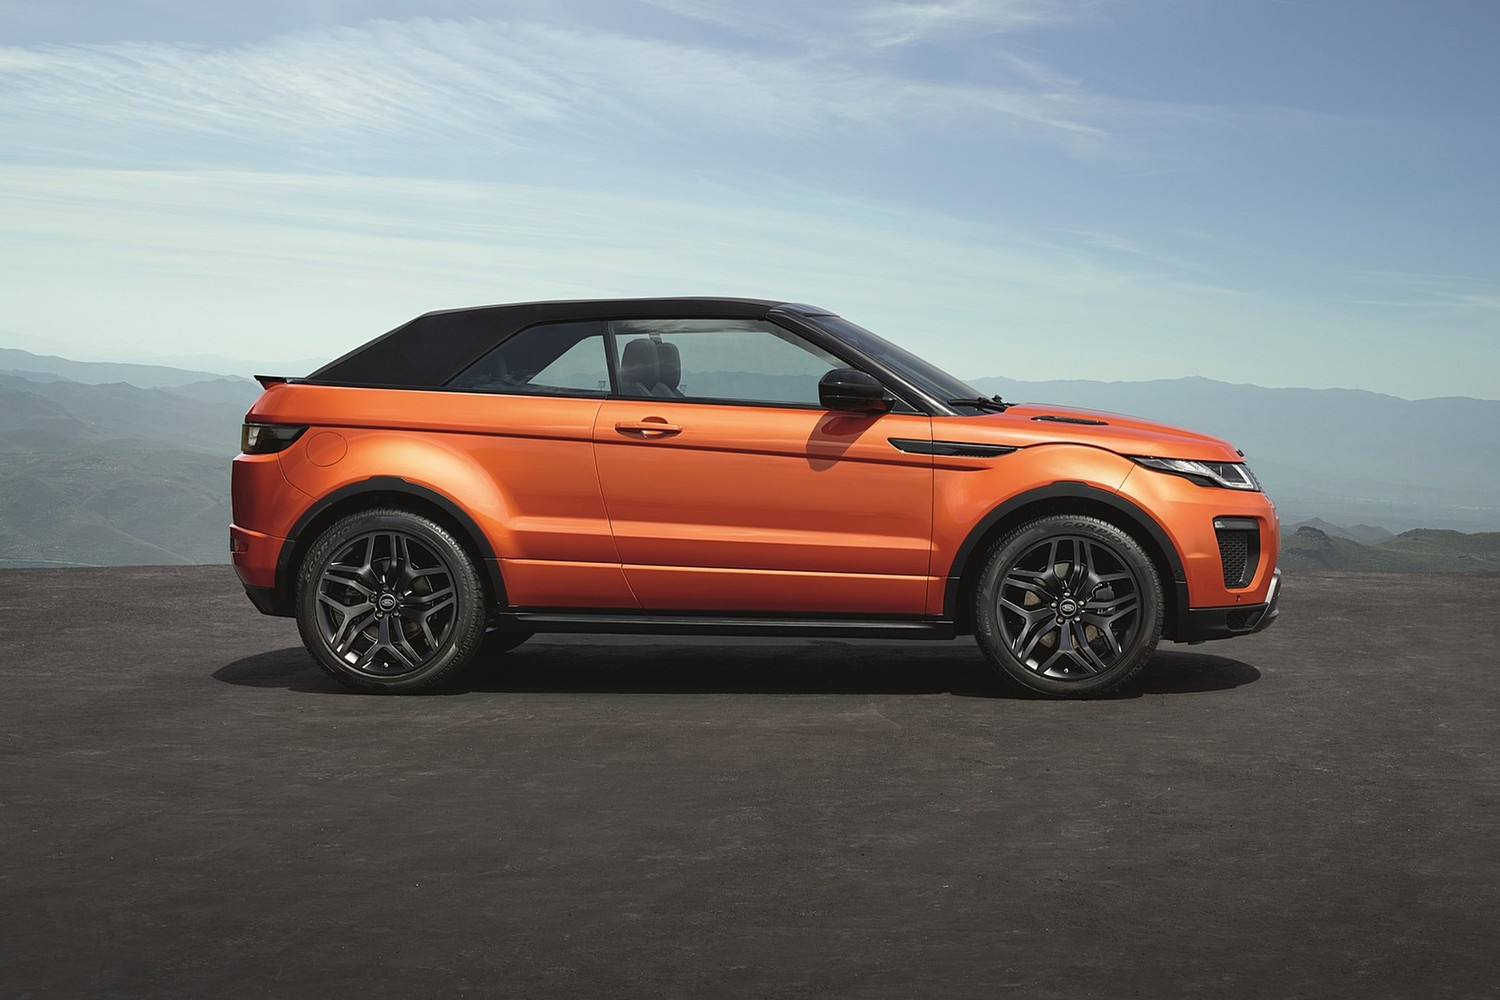 2018 Land Rover Range Rover Evoque HSE Dynamic Convertible SUV Profile. Options Shown.